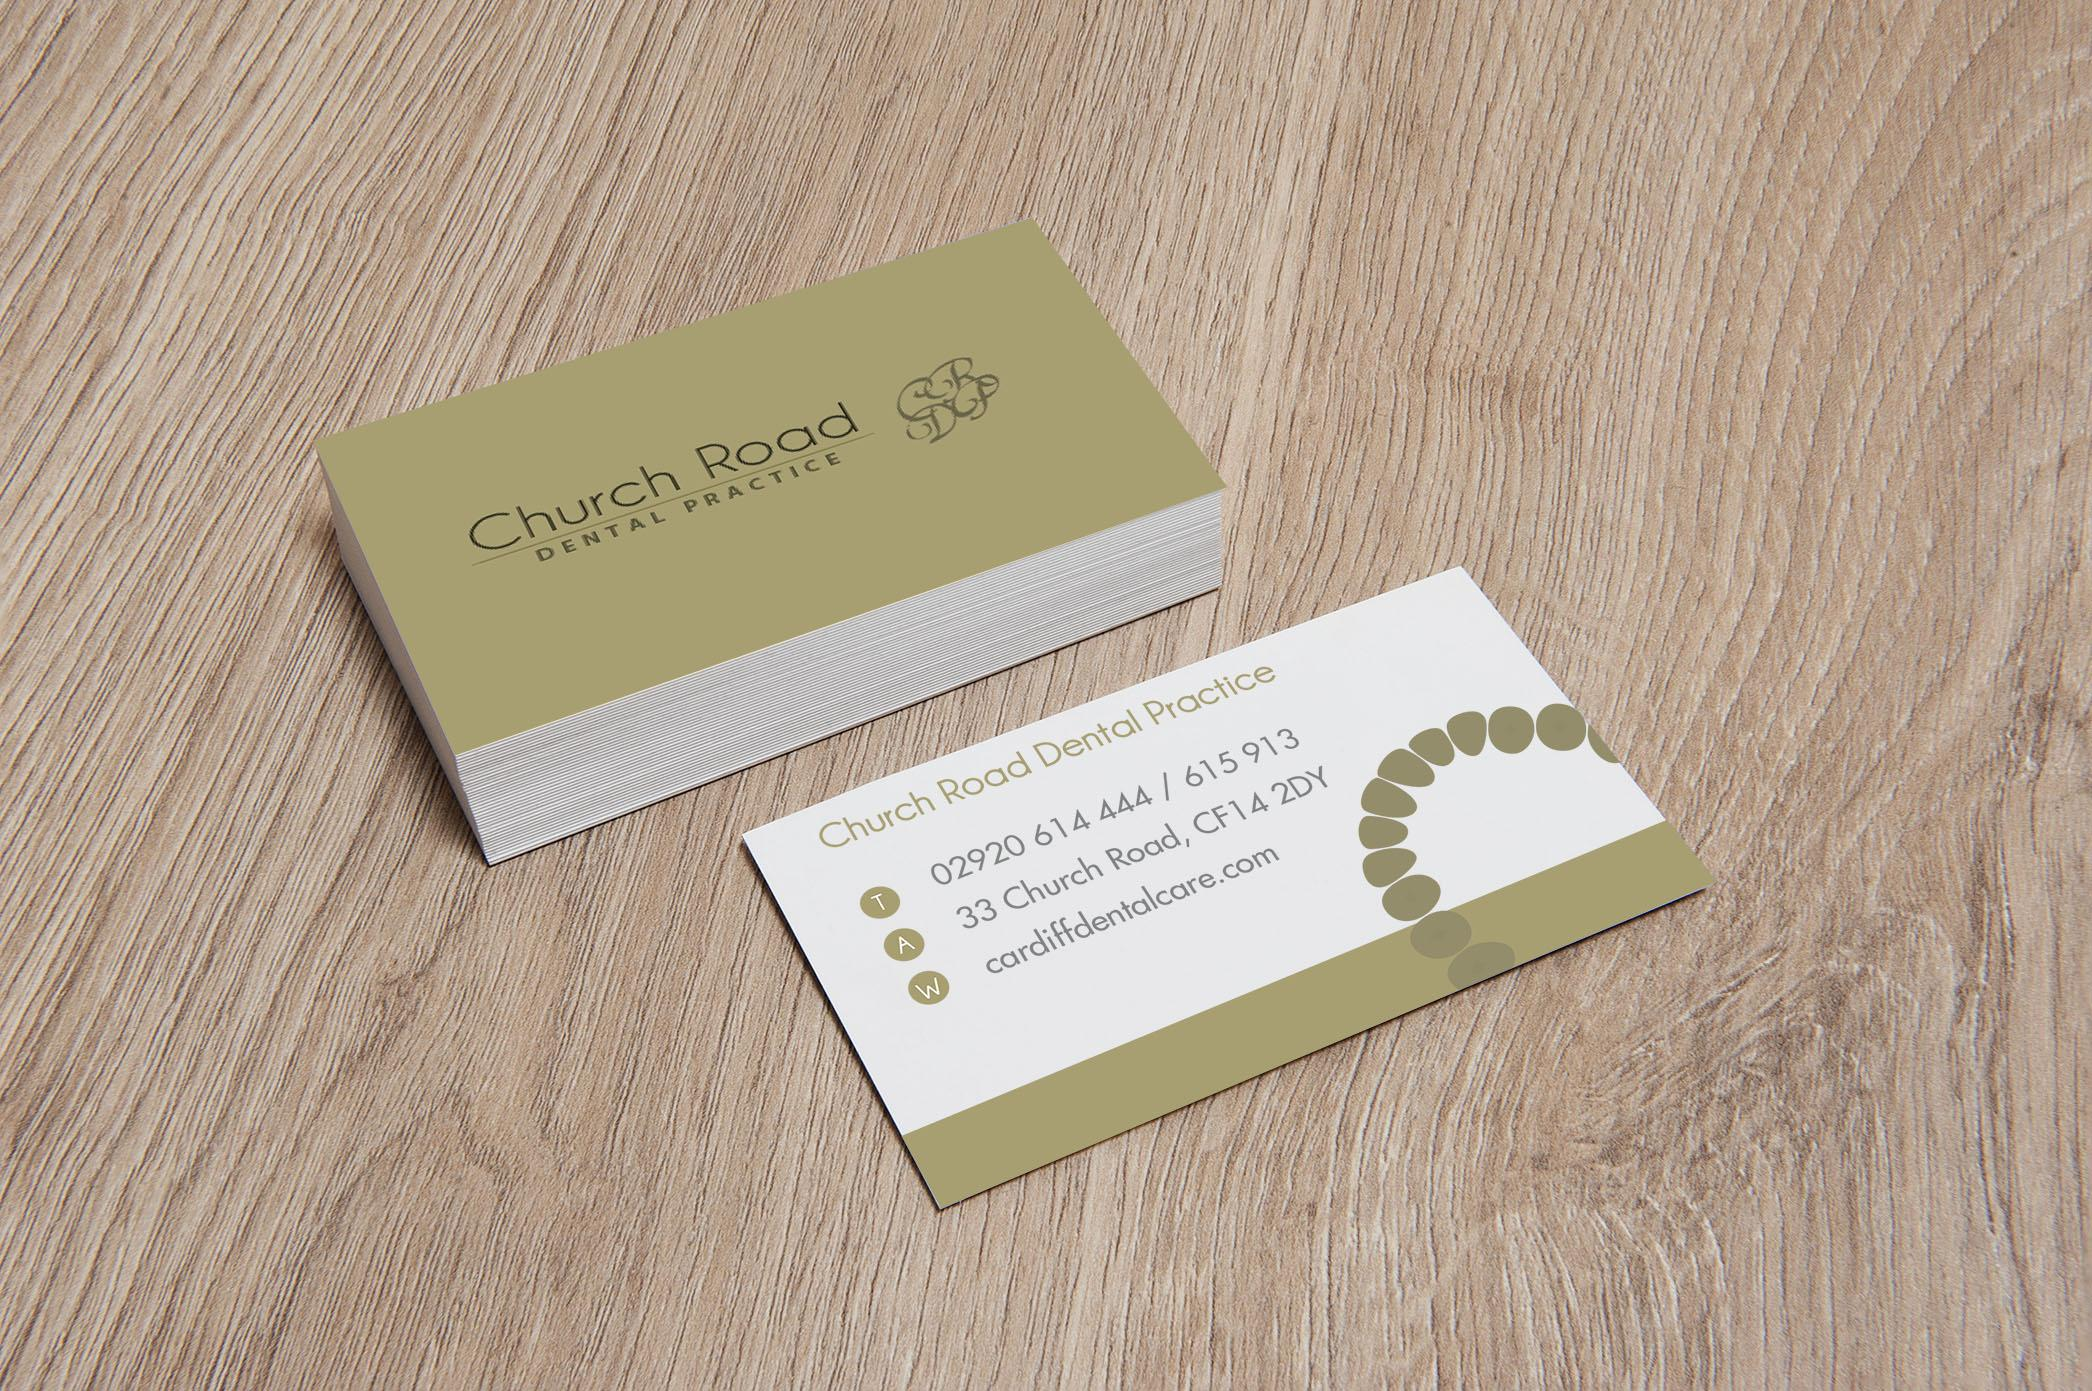 Church business card design gallery free business cards effective business card design images free business cards web design cardiff business card feel free to magicingreecefo Images